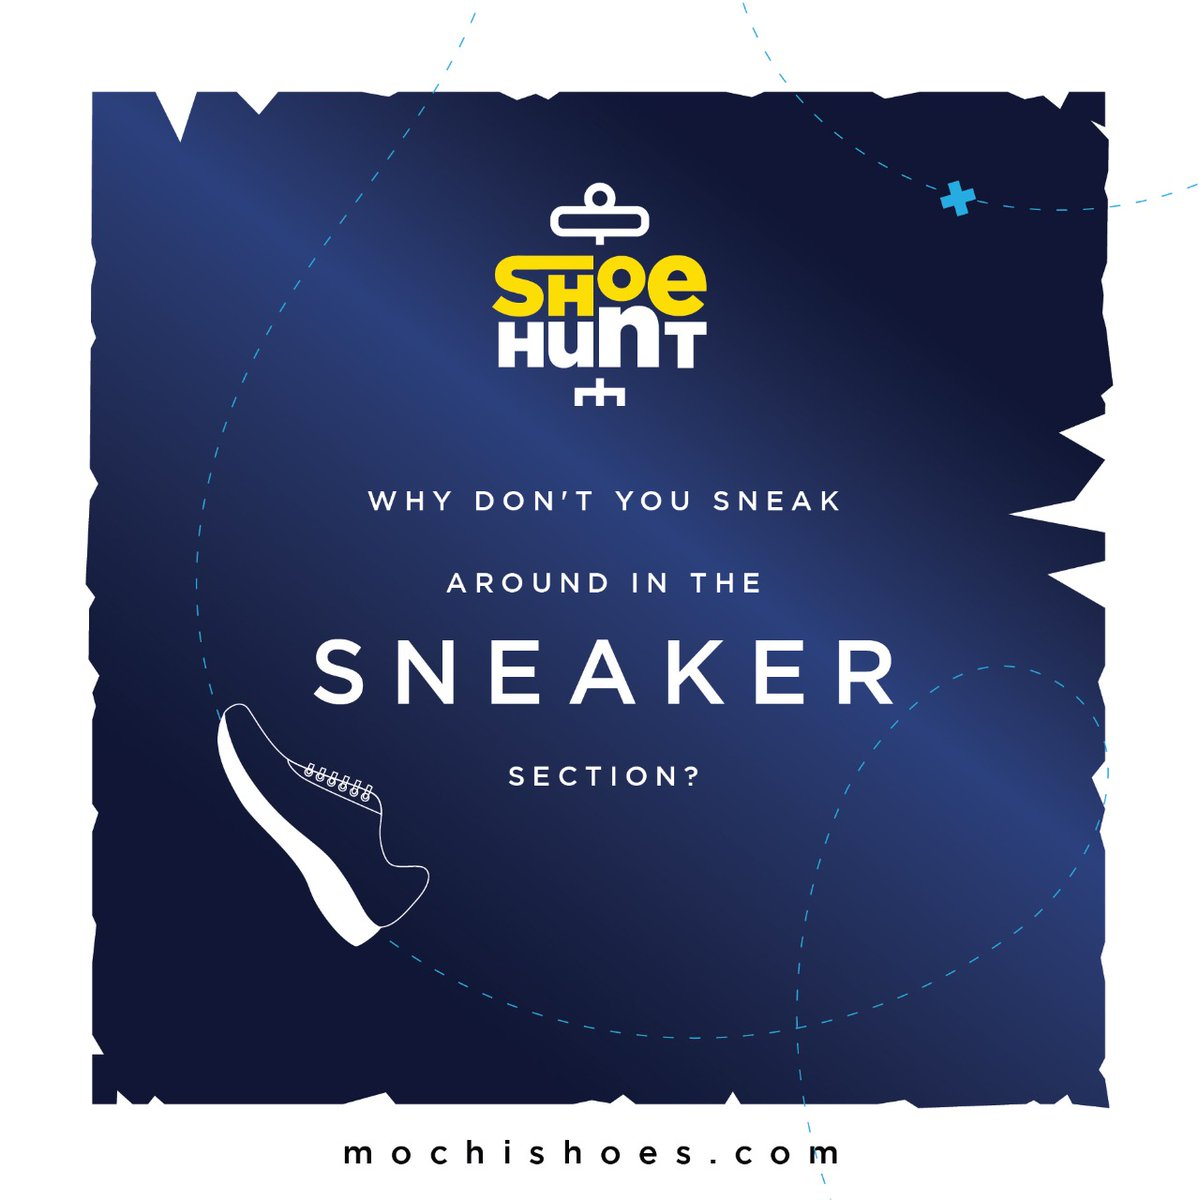 #ContestAlert #GiveawayAlert  The First clue to finding the treasure! #ShoeHunt . . . #MochiShoes #AwesomeNeverStops  #StayAwesome<br>http://pic.twitter.com/szl5mjiA1e